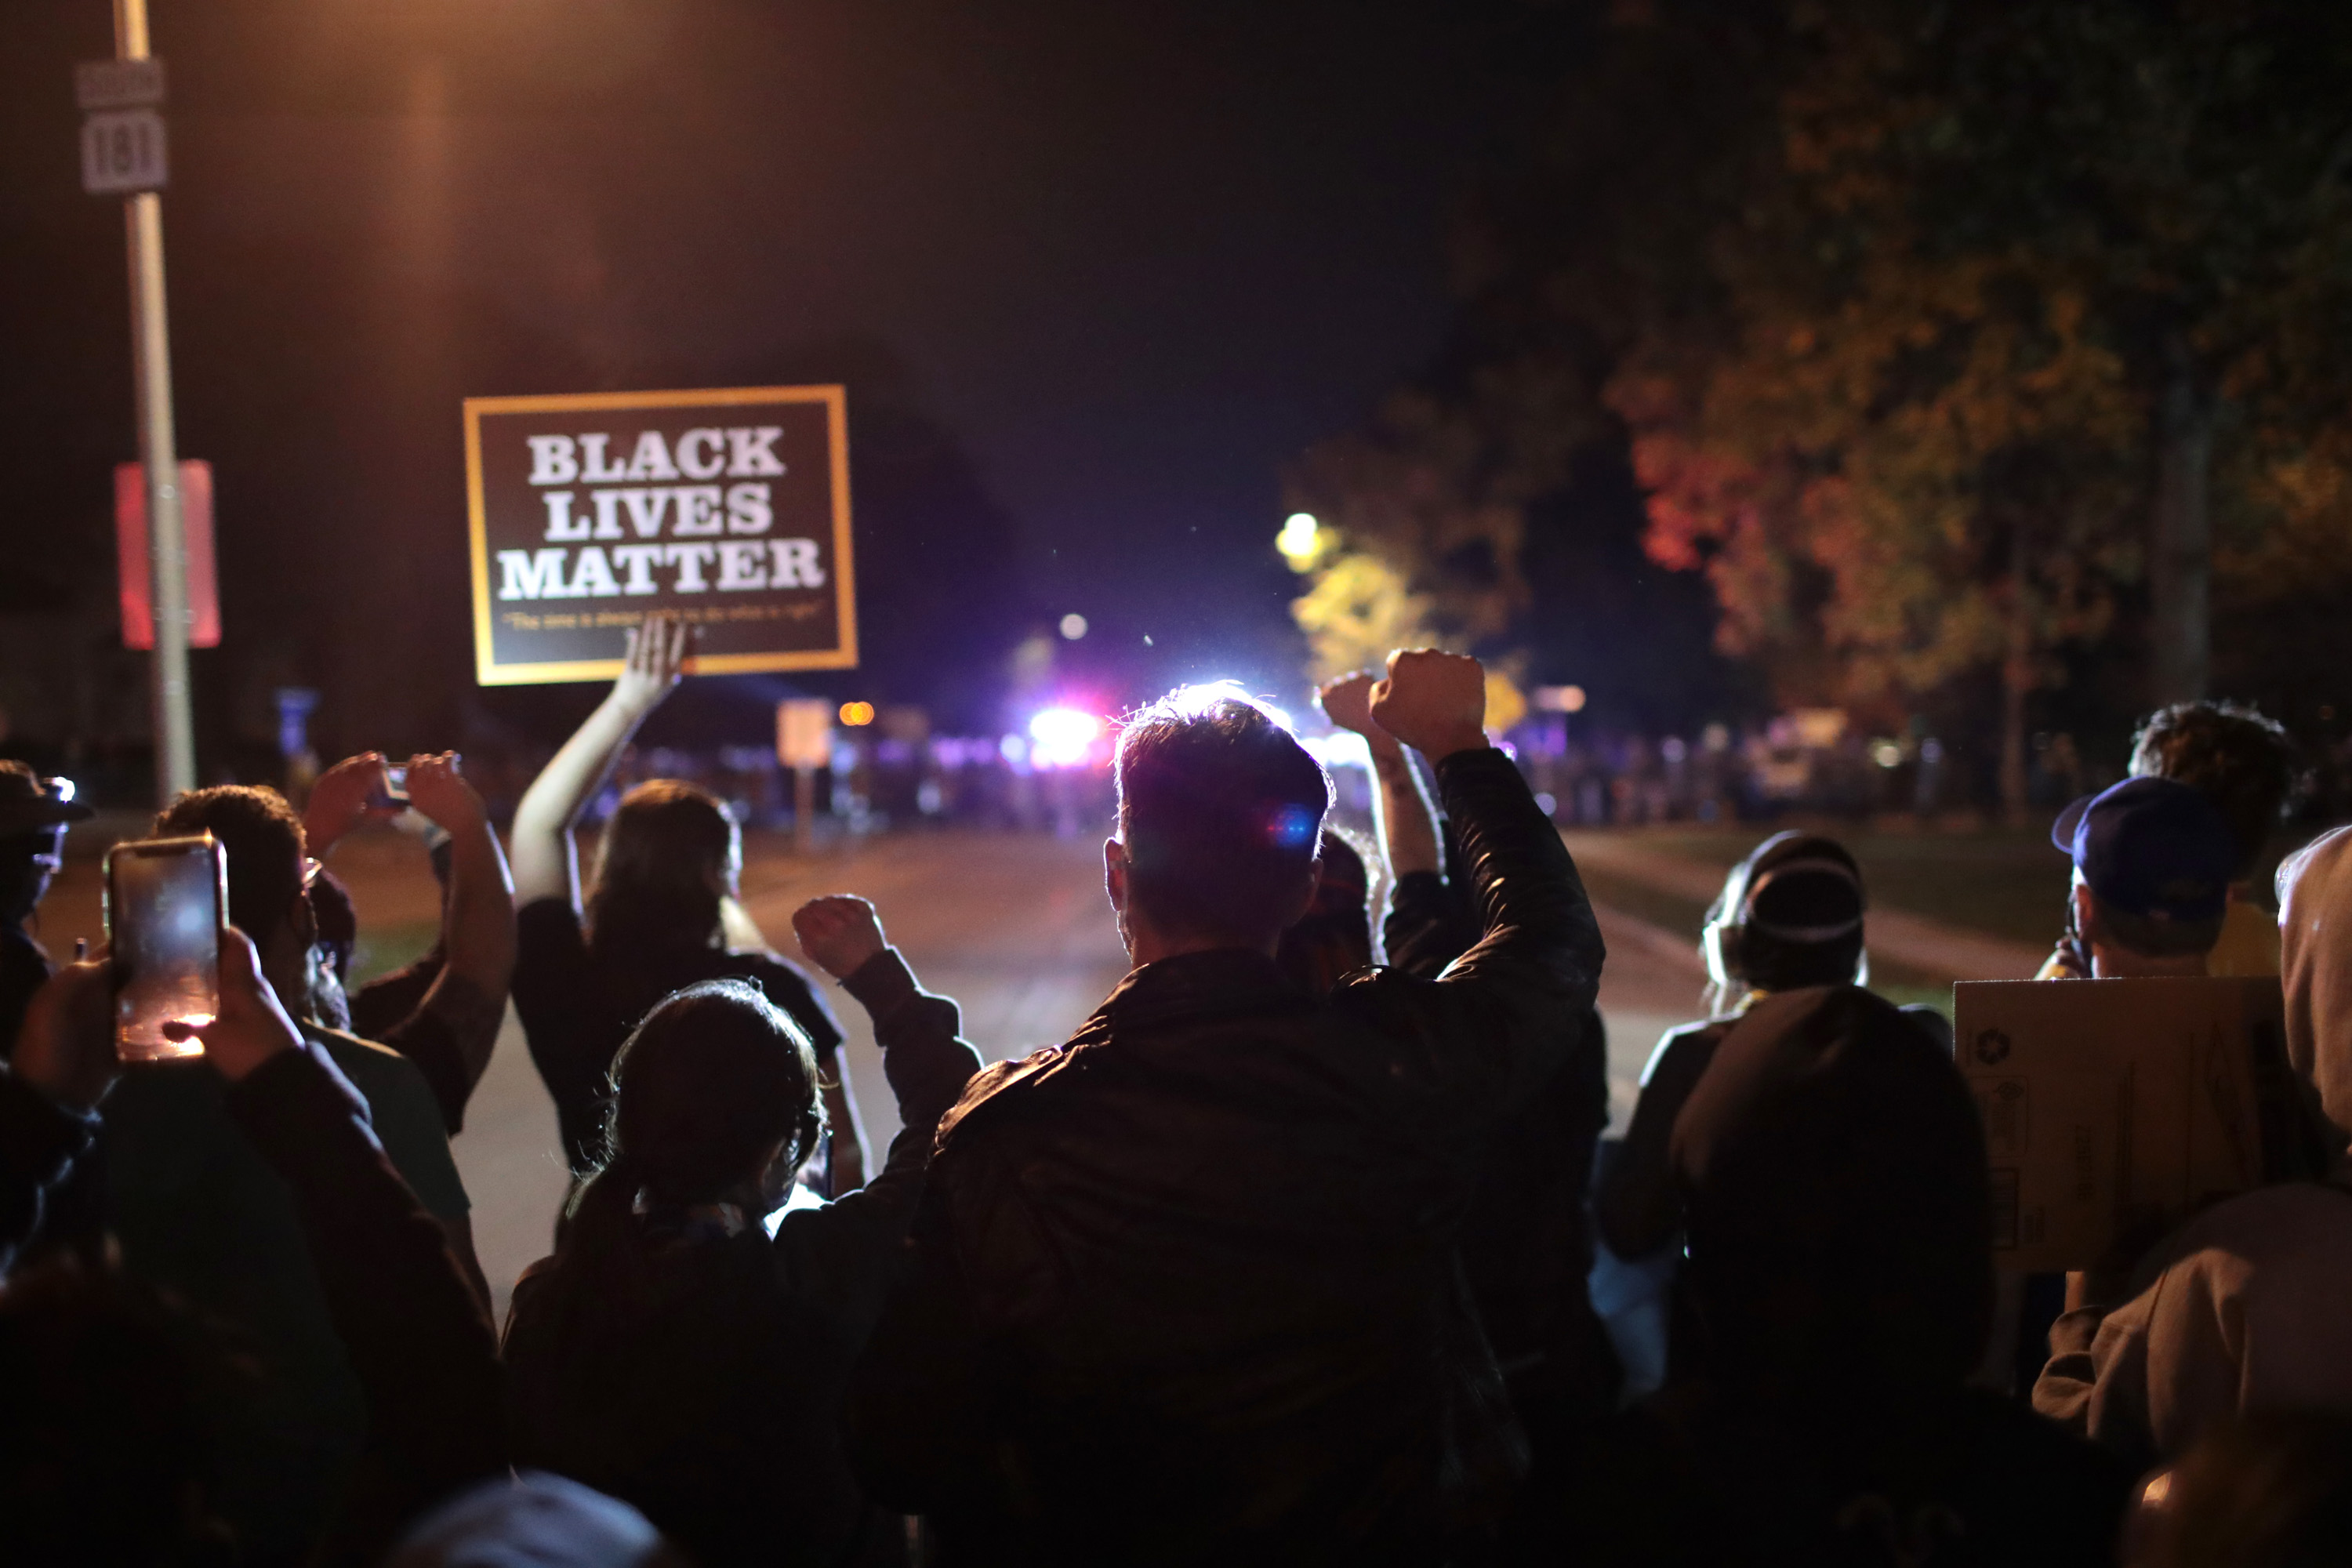 28 Arrested in Wauwatosa during 3rd night of protests over shooting of Black teenager